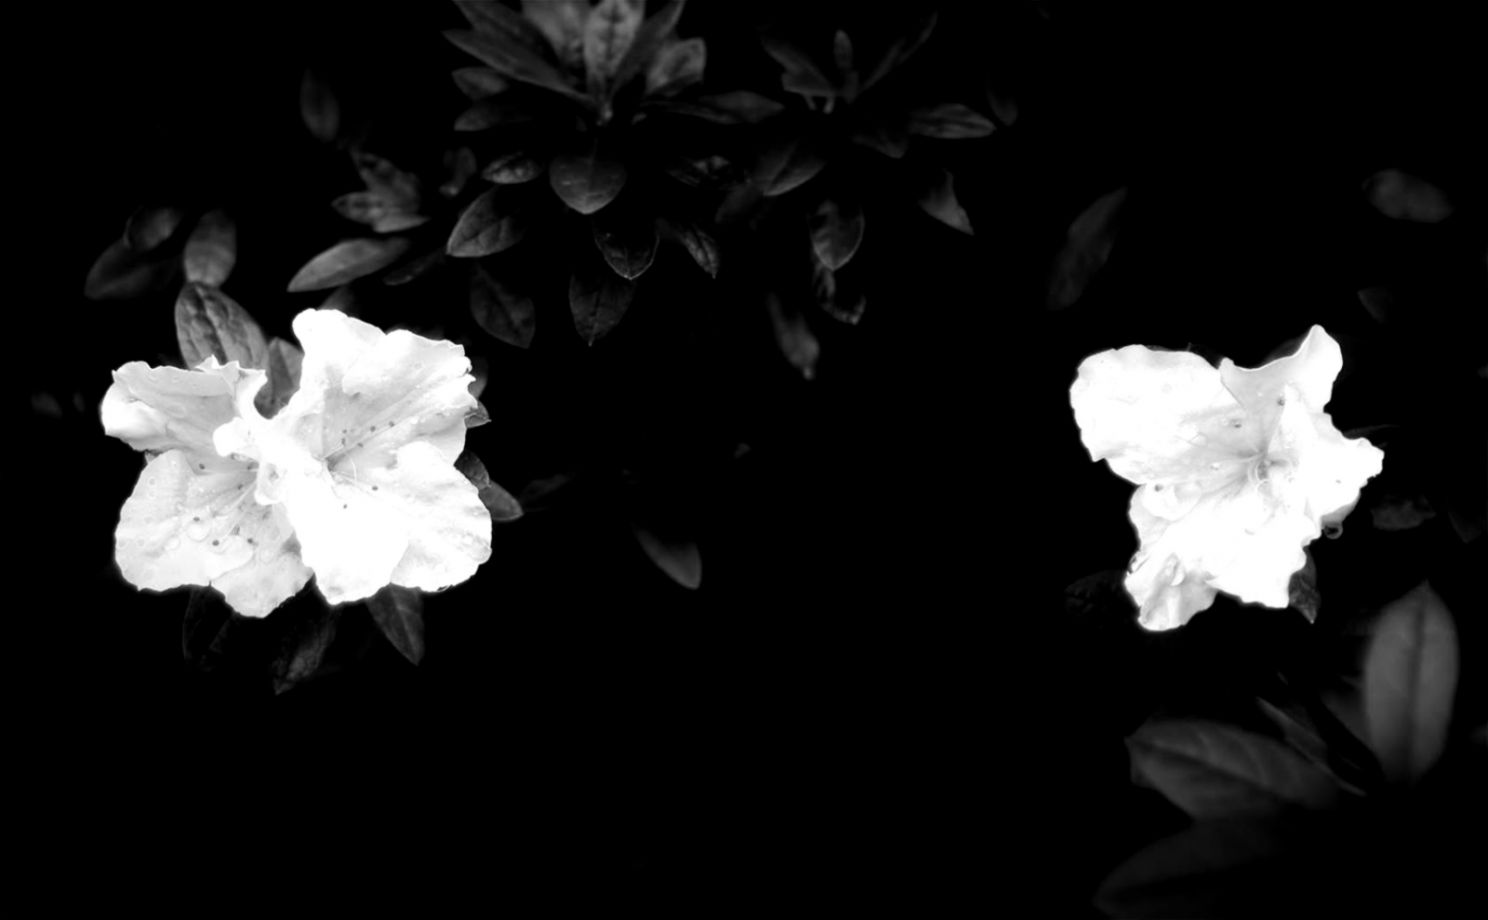 Flowers Black Background 6989700